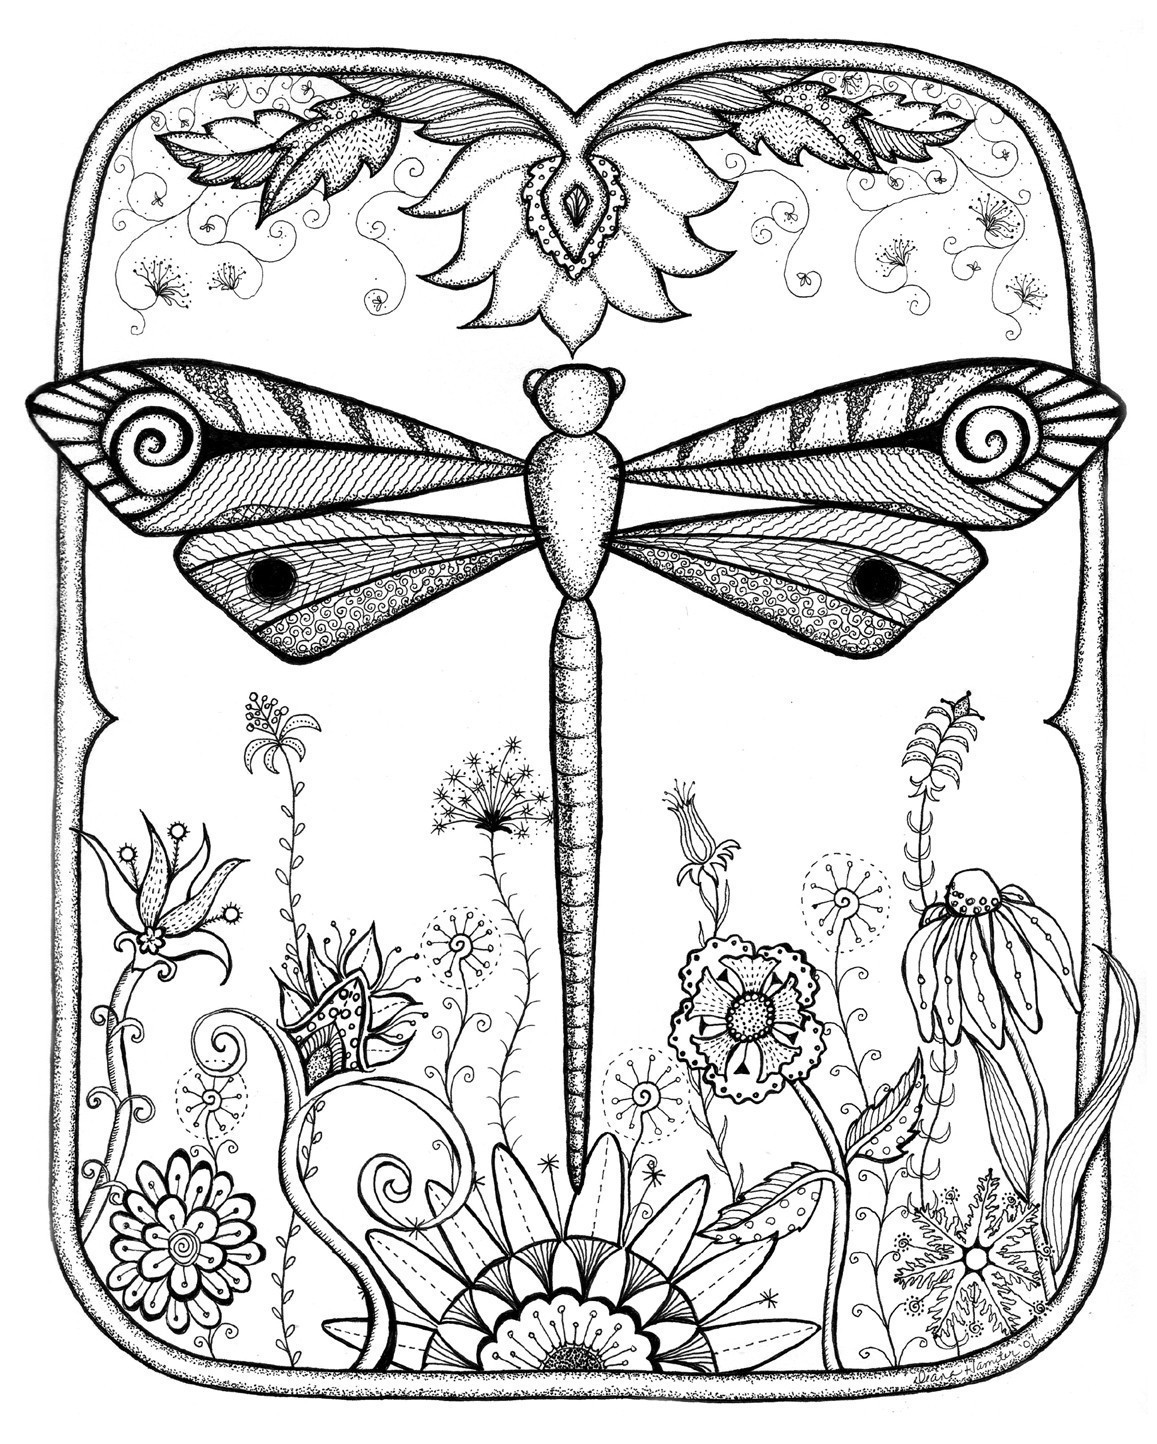 Free Dragonfly Coloring Pages At Getdrawings Com Free For Personal